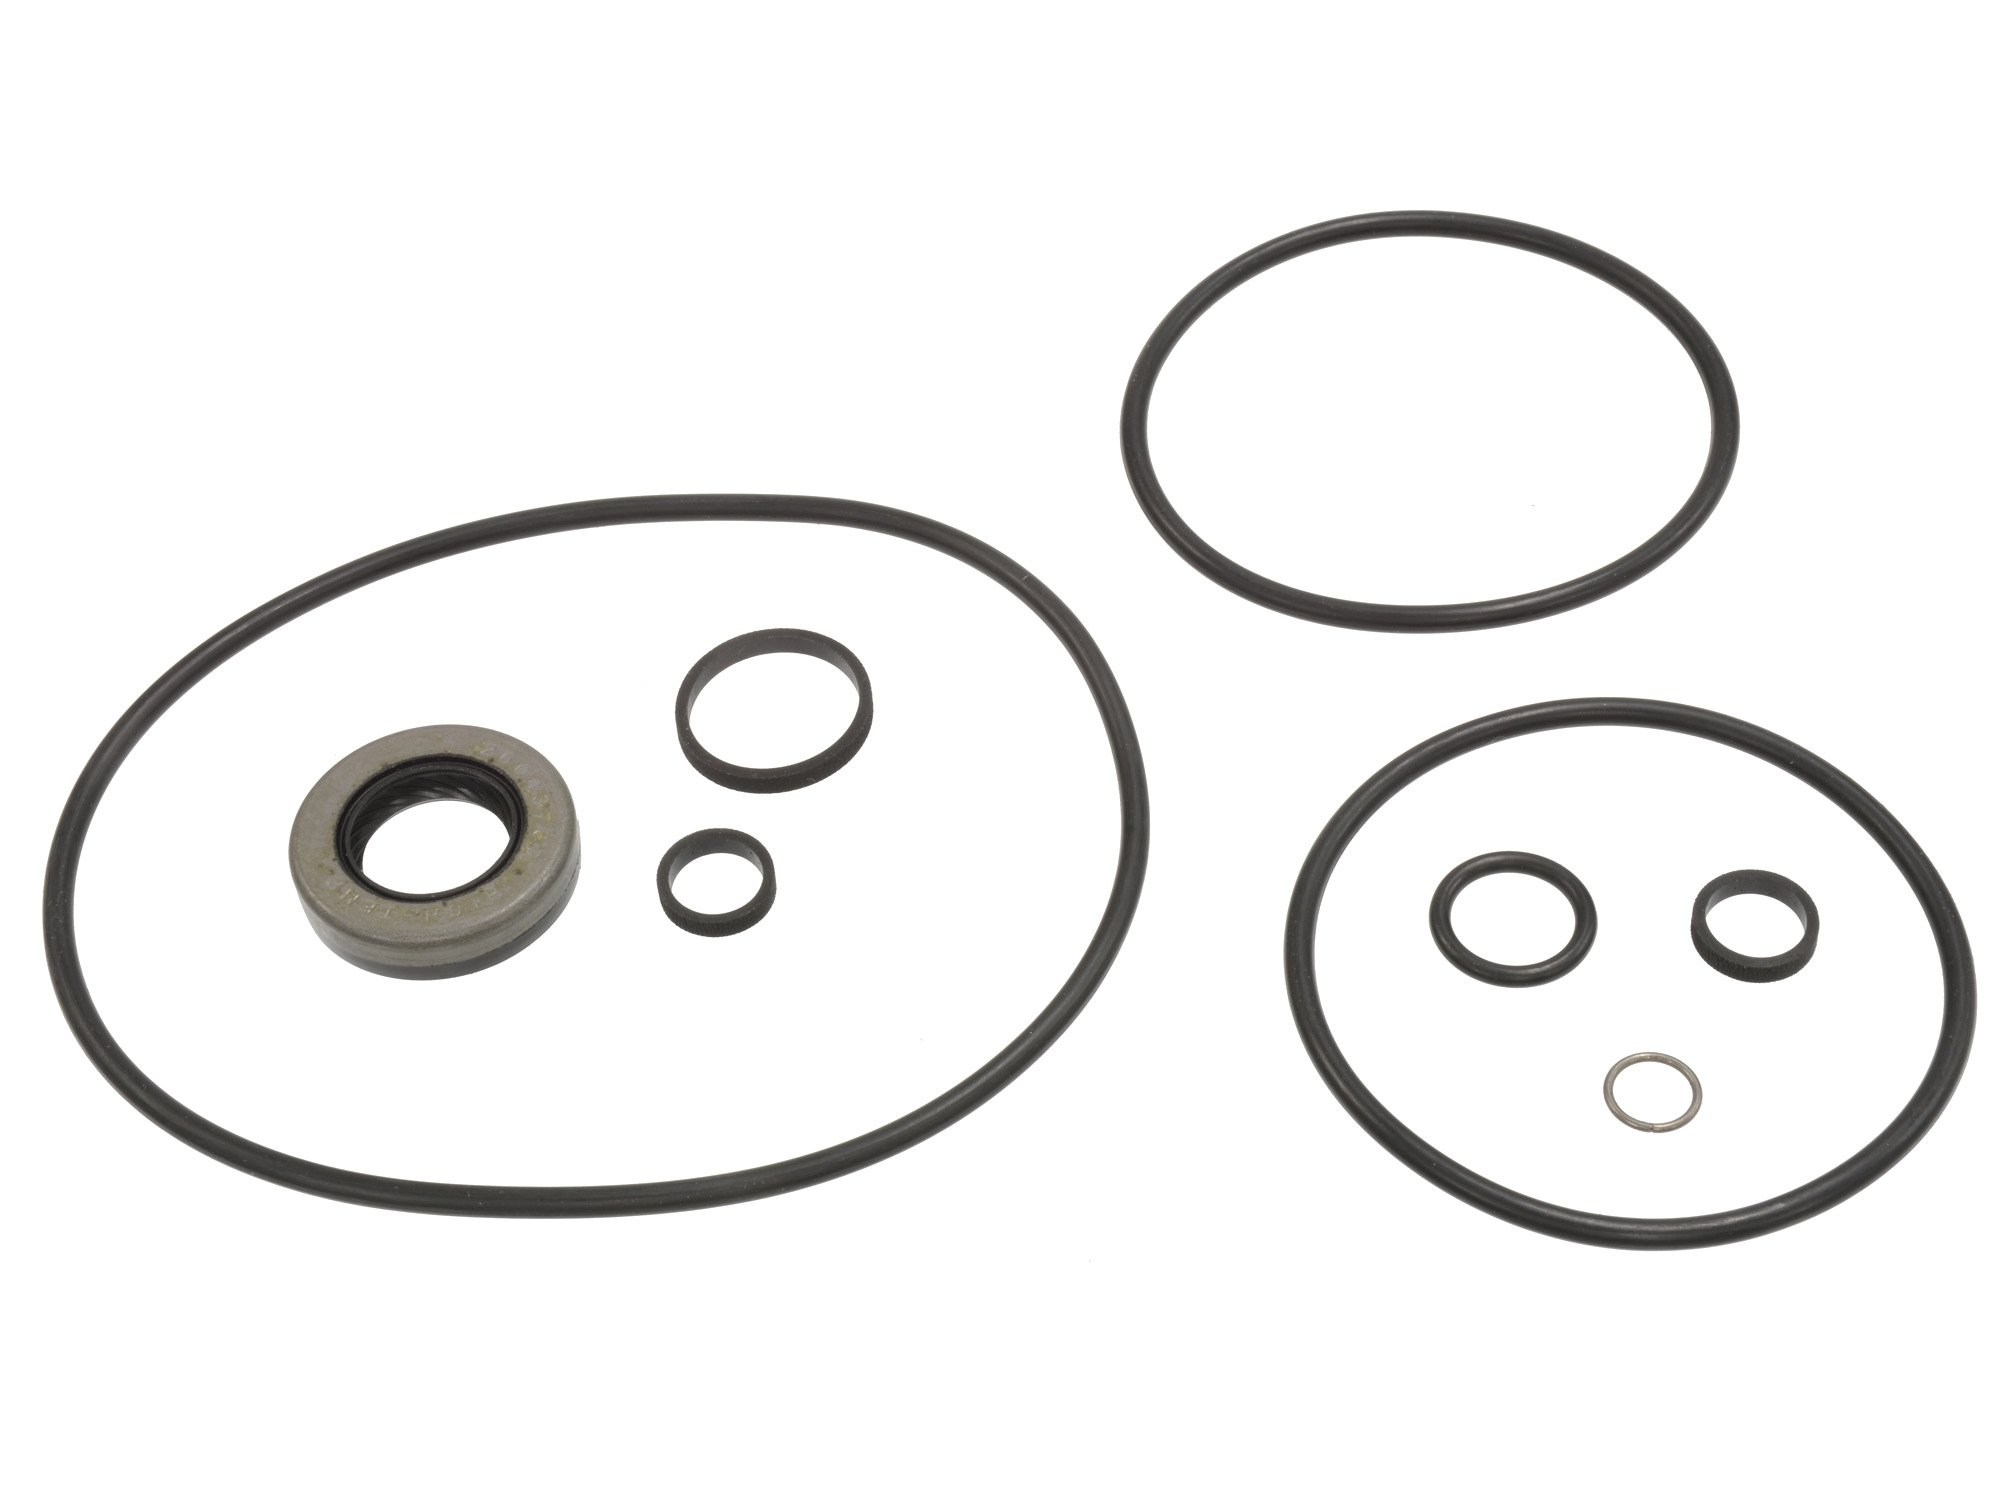 Corvette Power Steering Pump Seal Rebuild Kit